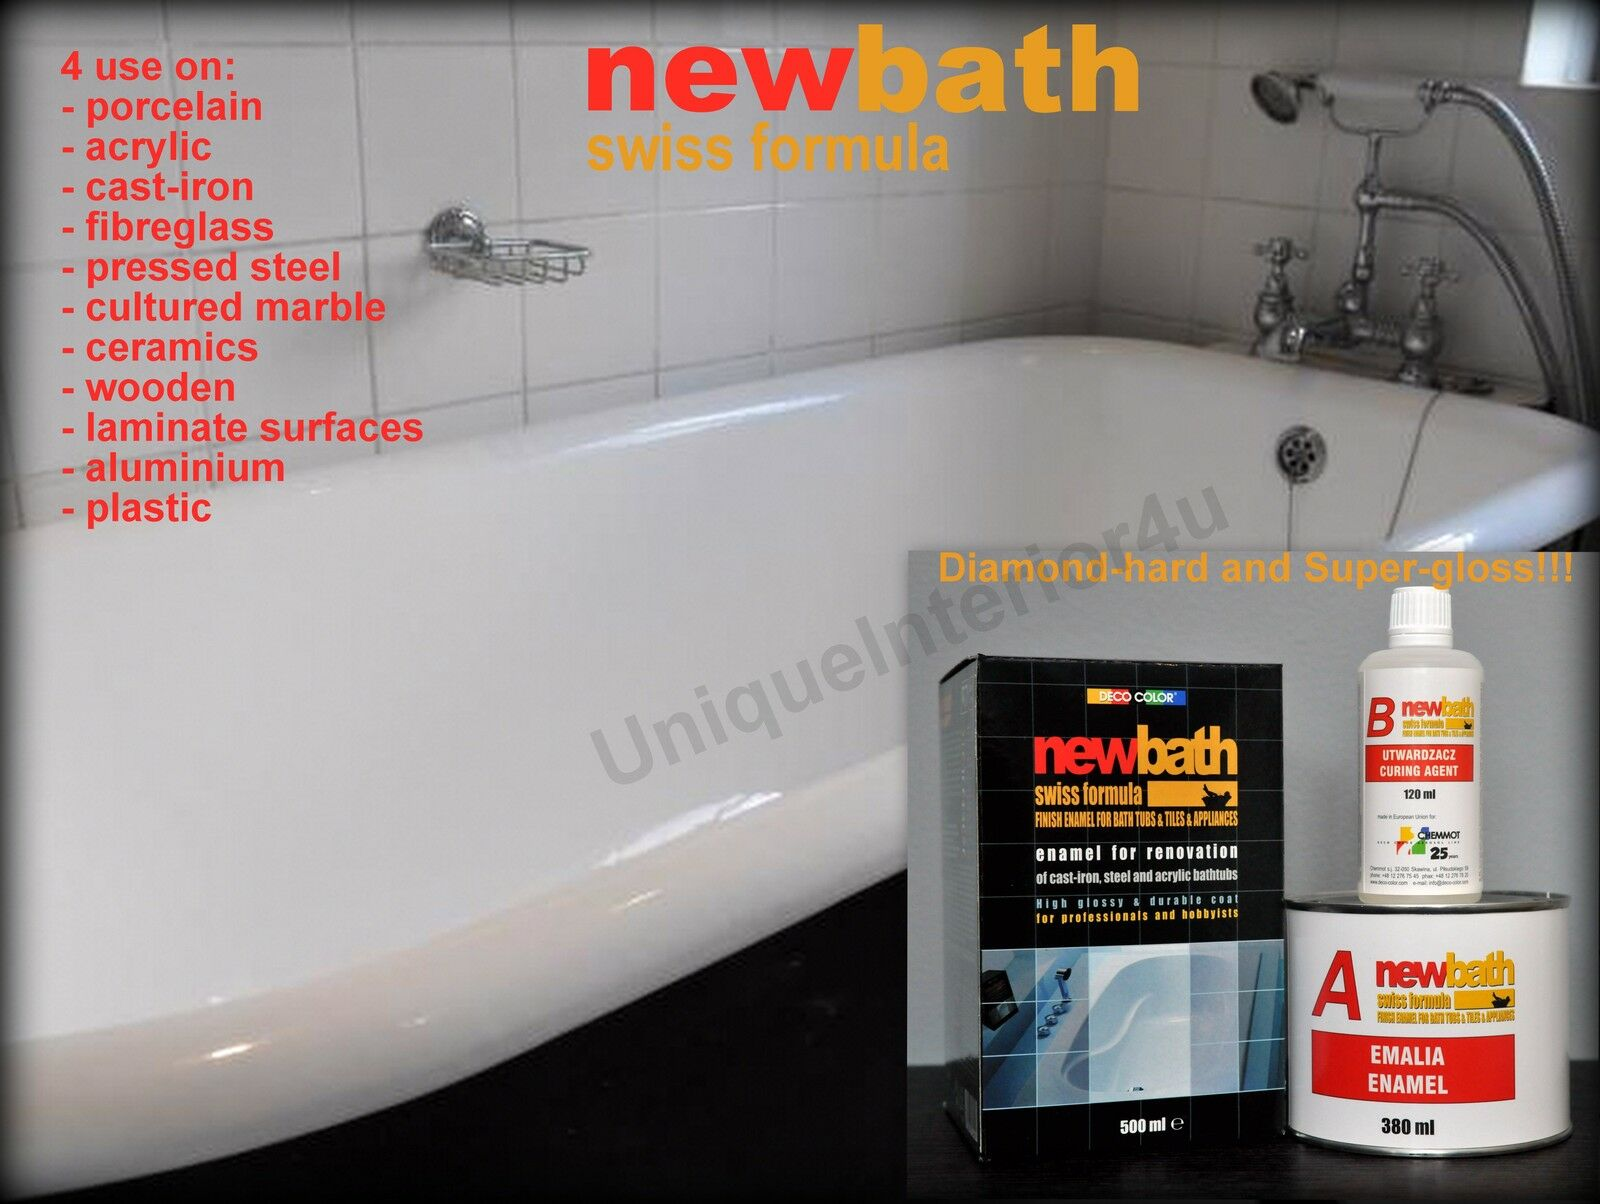 Generous Can I Paint My Bathtub Tiny How To Paint A Bath Tub Rectangular Bathroom Refinishers Porcelain Refinishing Company Young Tub Reglazing DarkBathtub Refinishing Cost Bath Resurfacing | Bedroom And Living Room Image Collections